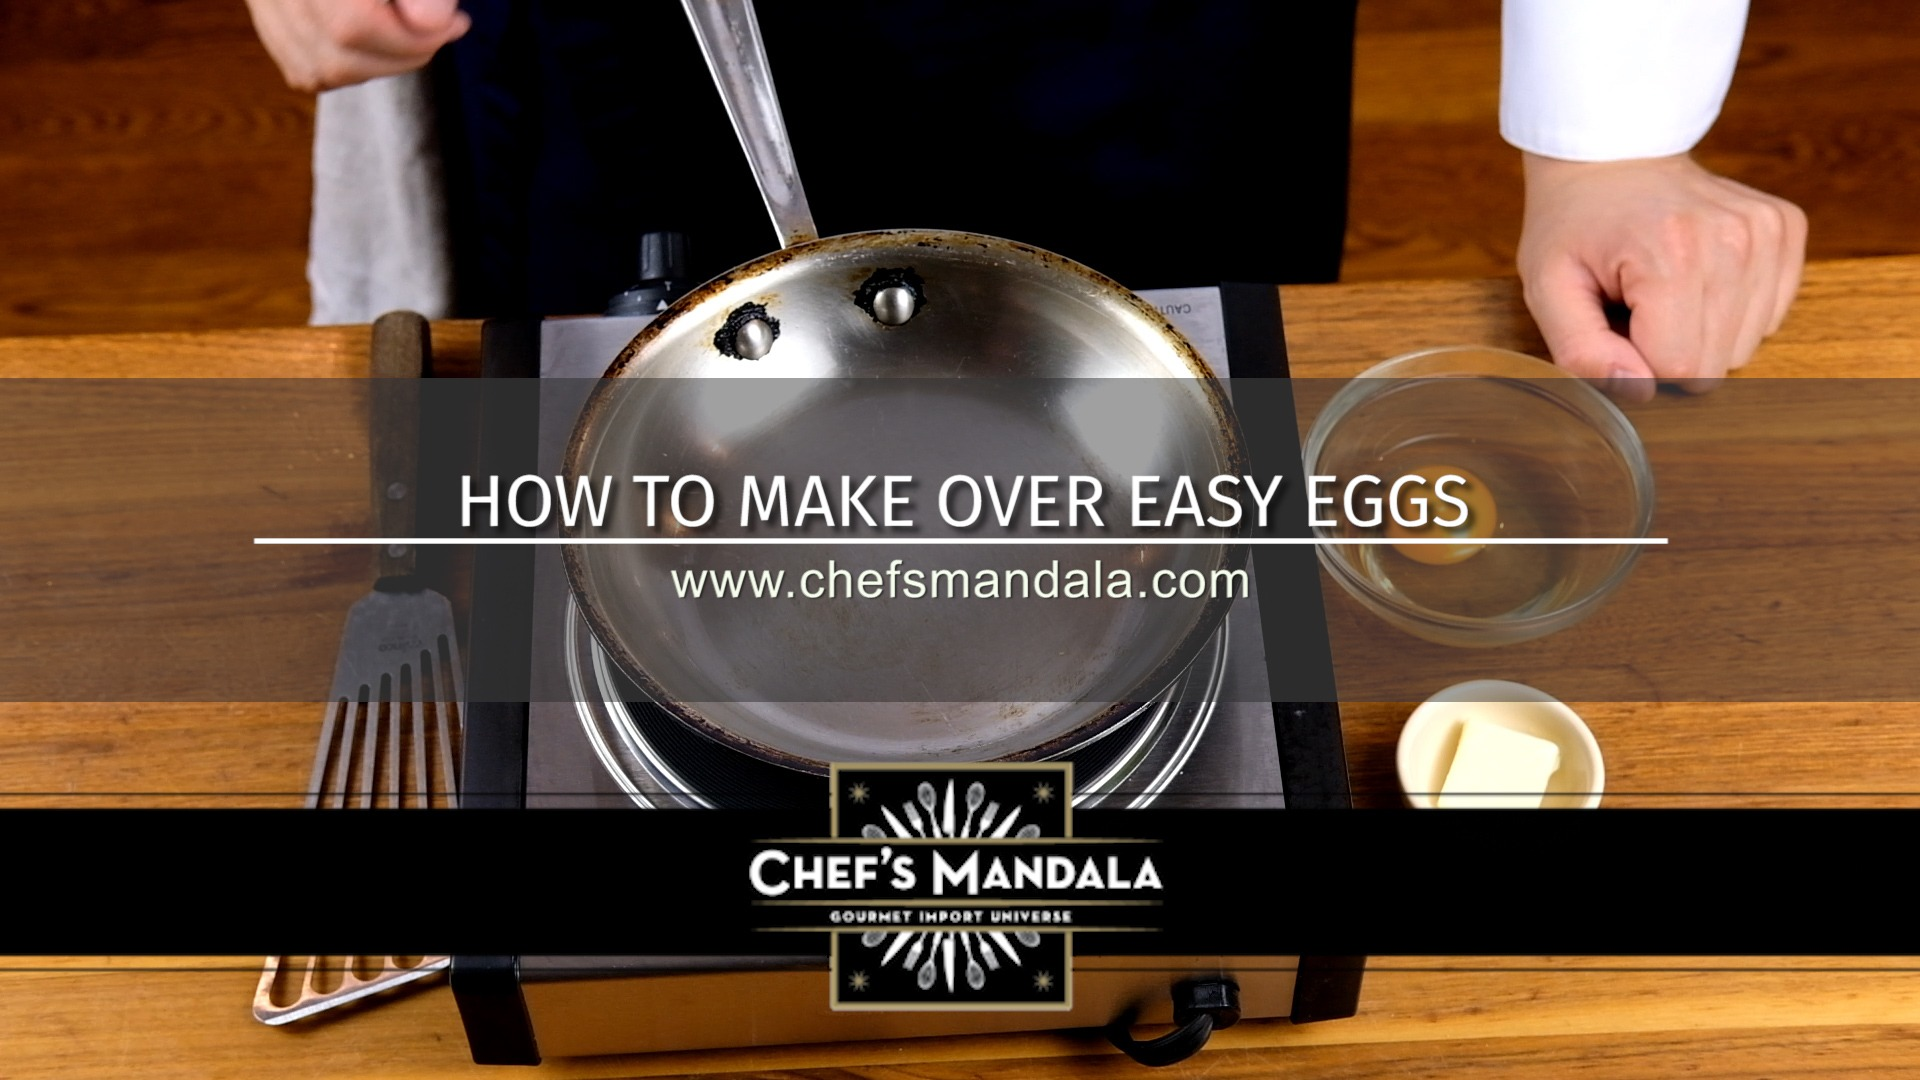 HOW TO MAKE EGGS OVER EASY